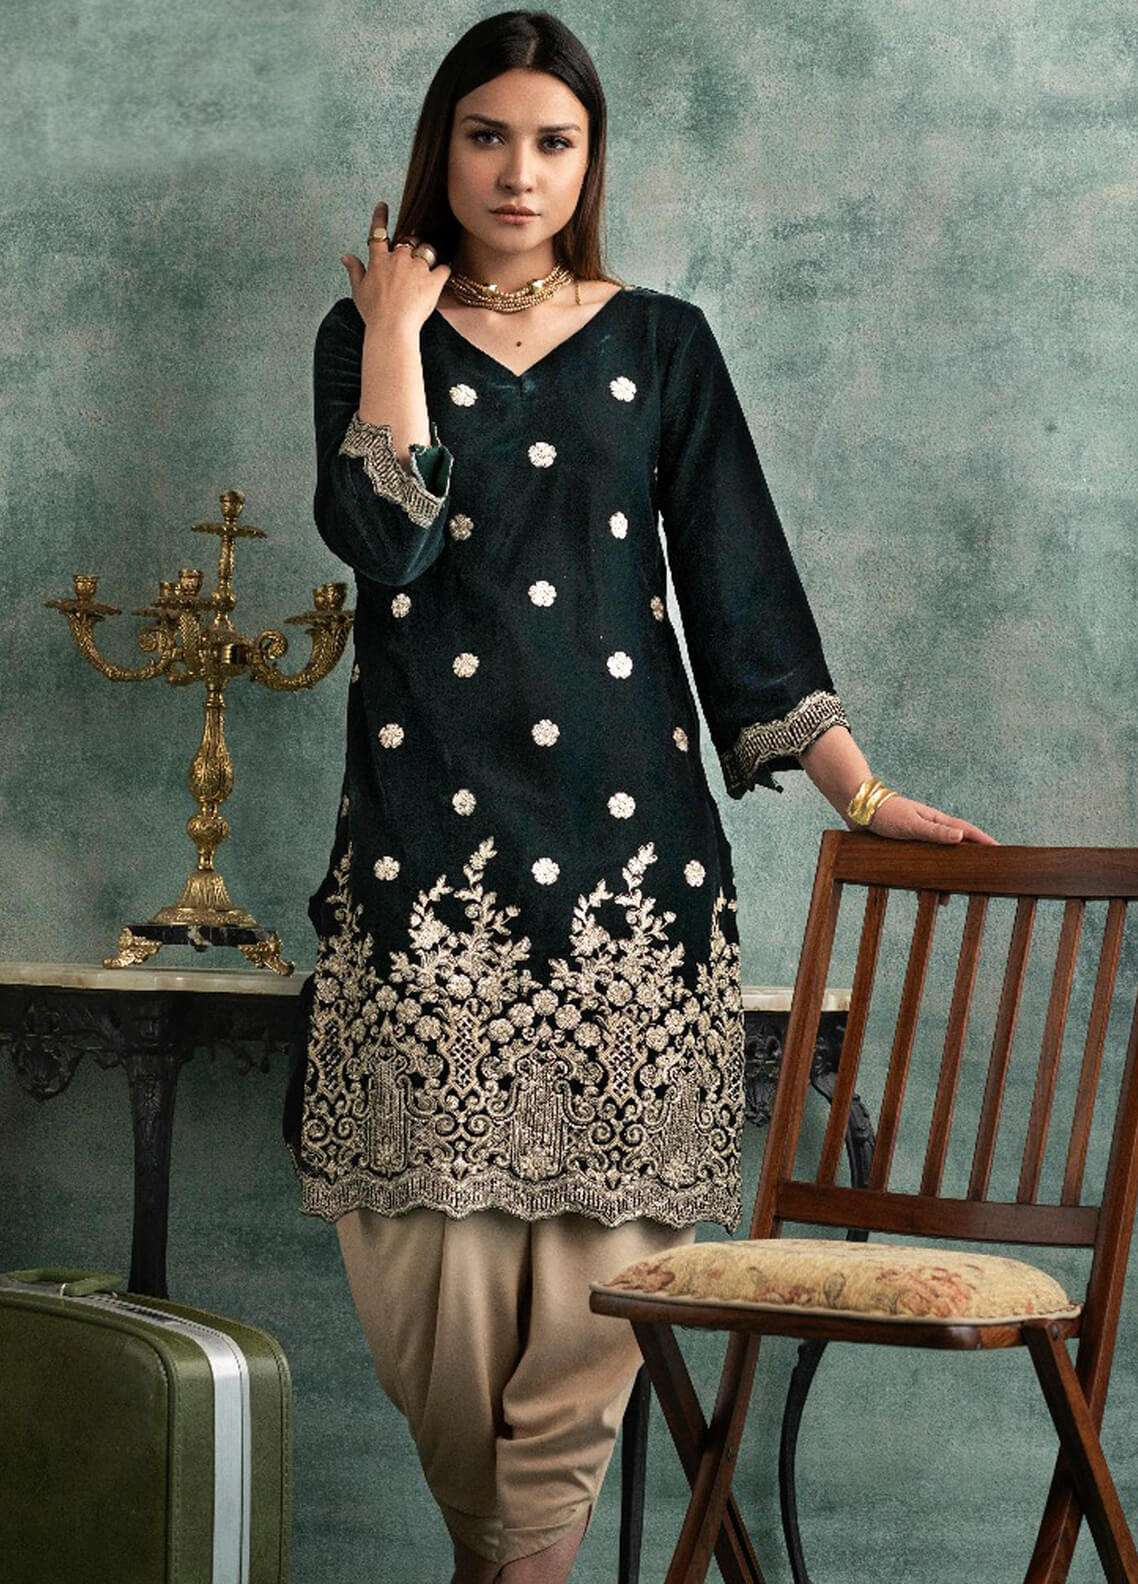 bbd0e0132e9 Rani Manan Embroidered Velvet Unstitched Kurties RM18-V3 06 - Winter  Collection